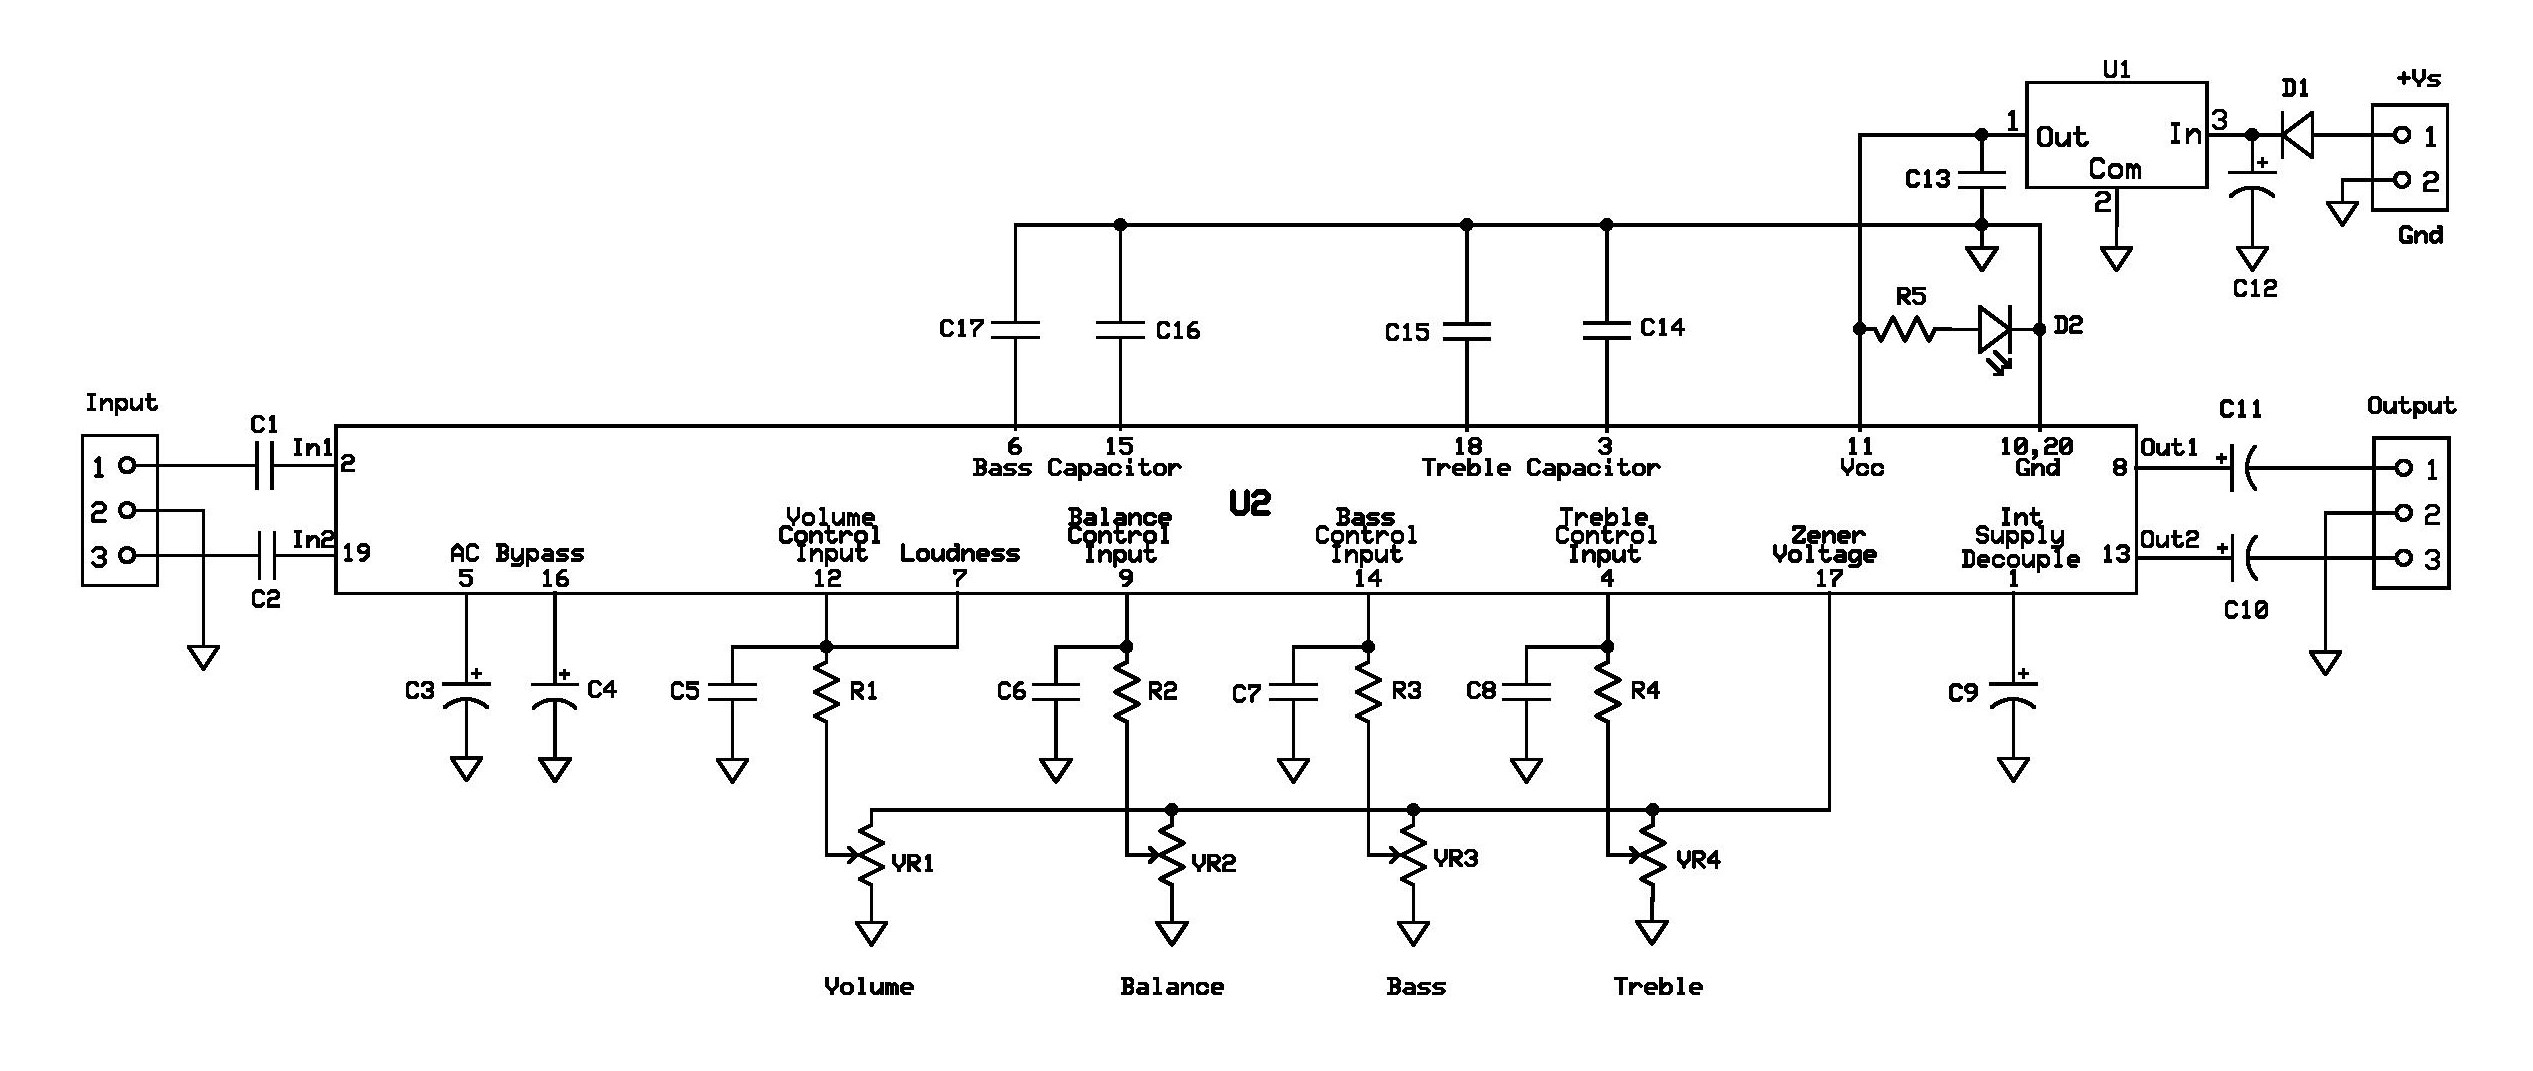 Battery Charger Lead Acid Automotive likewise AutomotiveBatteryCharger additionally 52 additionally Regulator Switching Dc To Dc Step Down Voltage With Lm2596 likewise 12v Solar Inverter Battery Charger. on 12 volt regulator circuit diagram